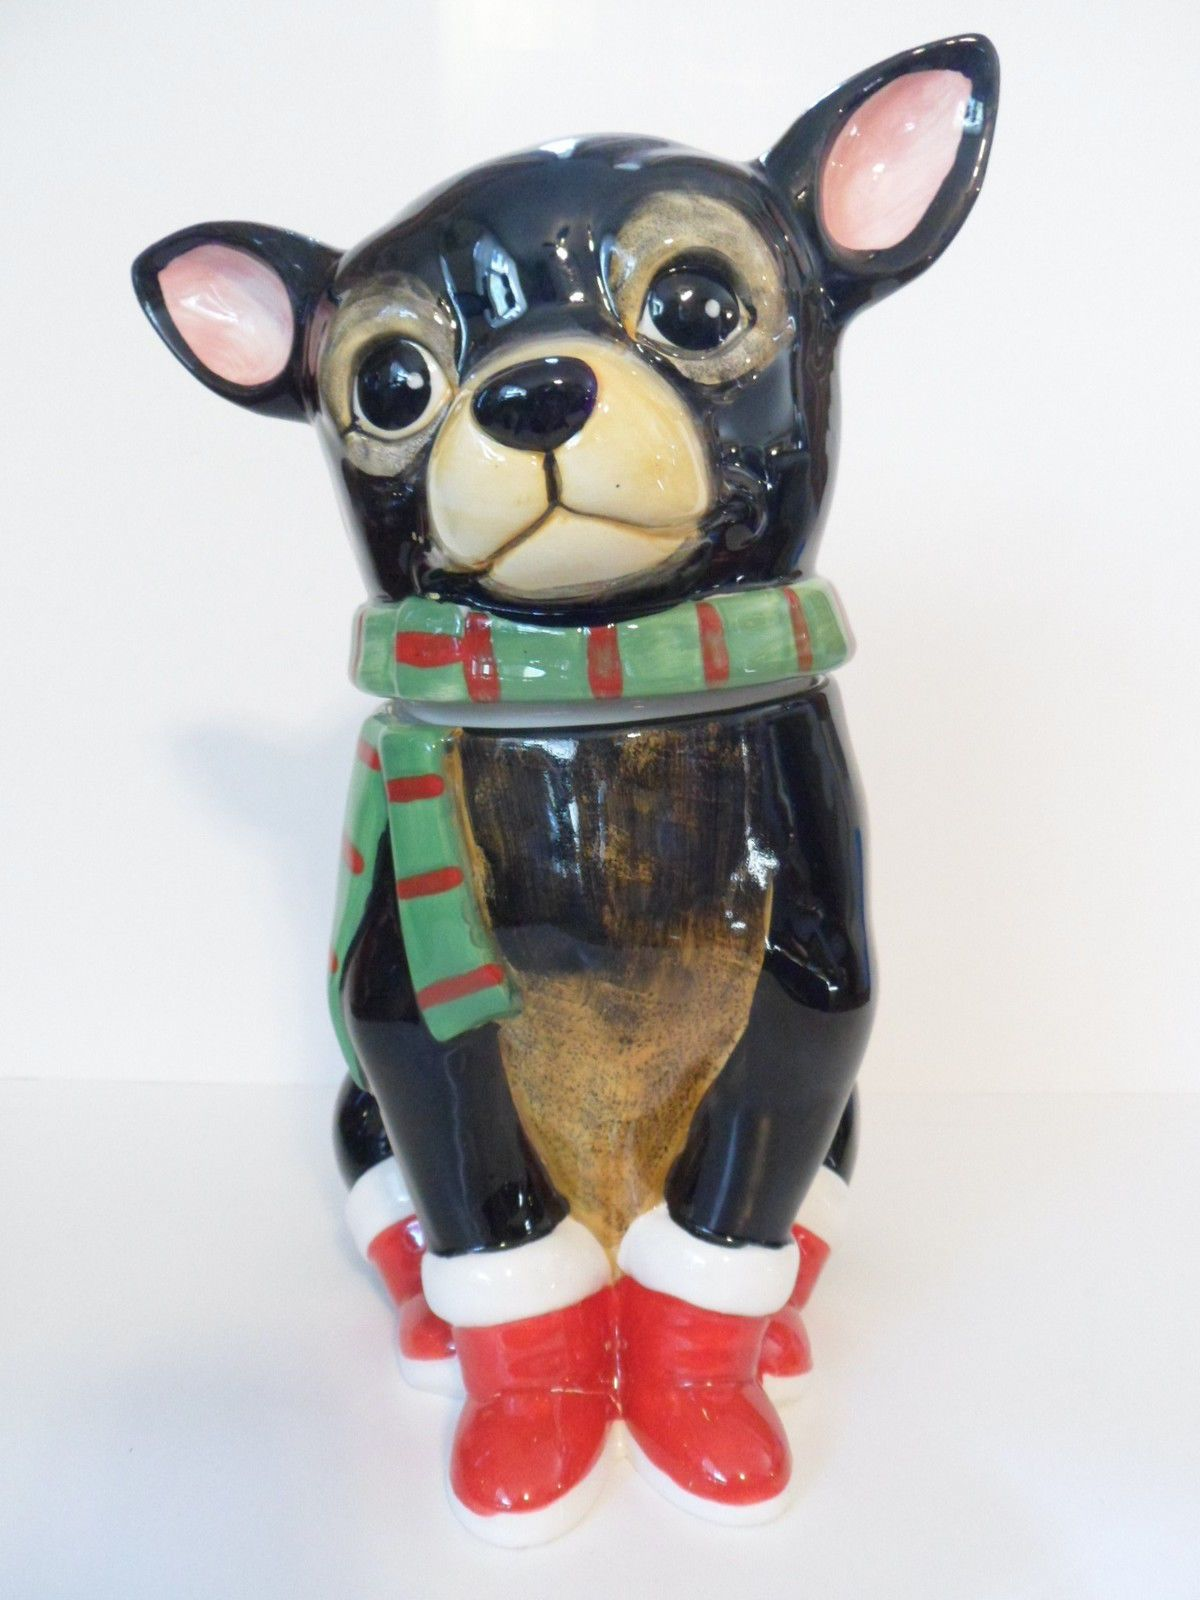 Chihuahua Cookie Jar Classy Starbucks San Francisco 2015 Ceramic Holiday Christmas Ornament Design Inspiration